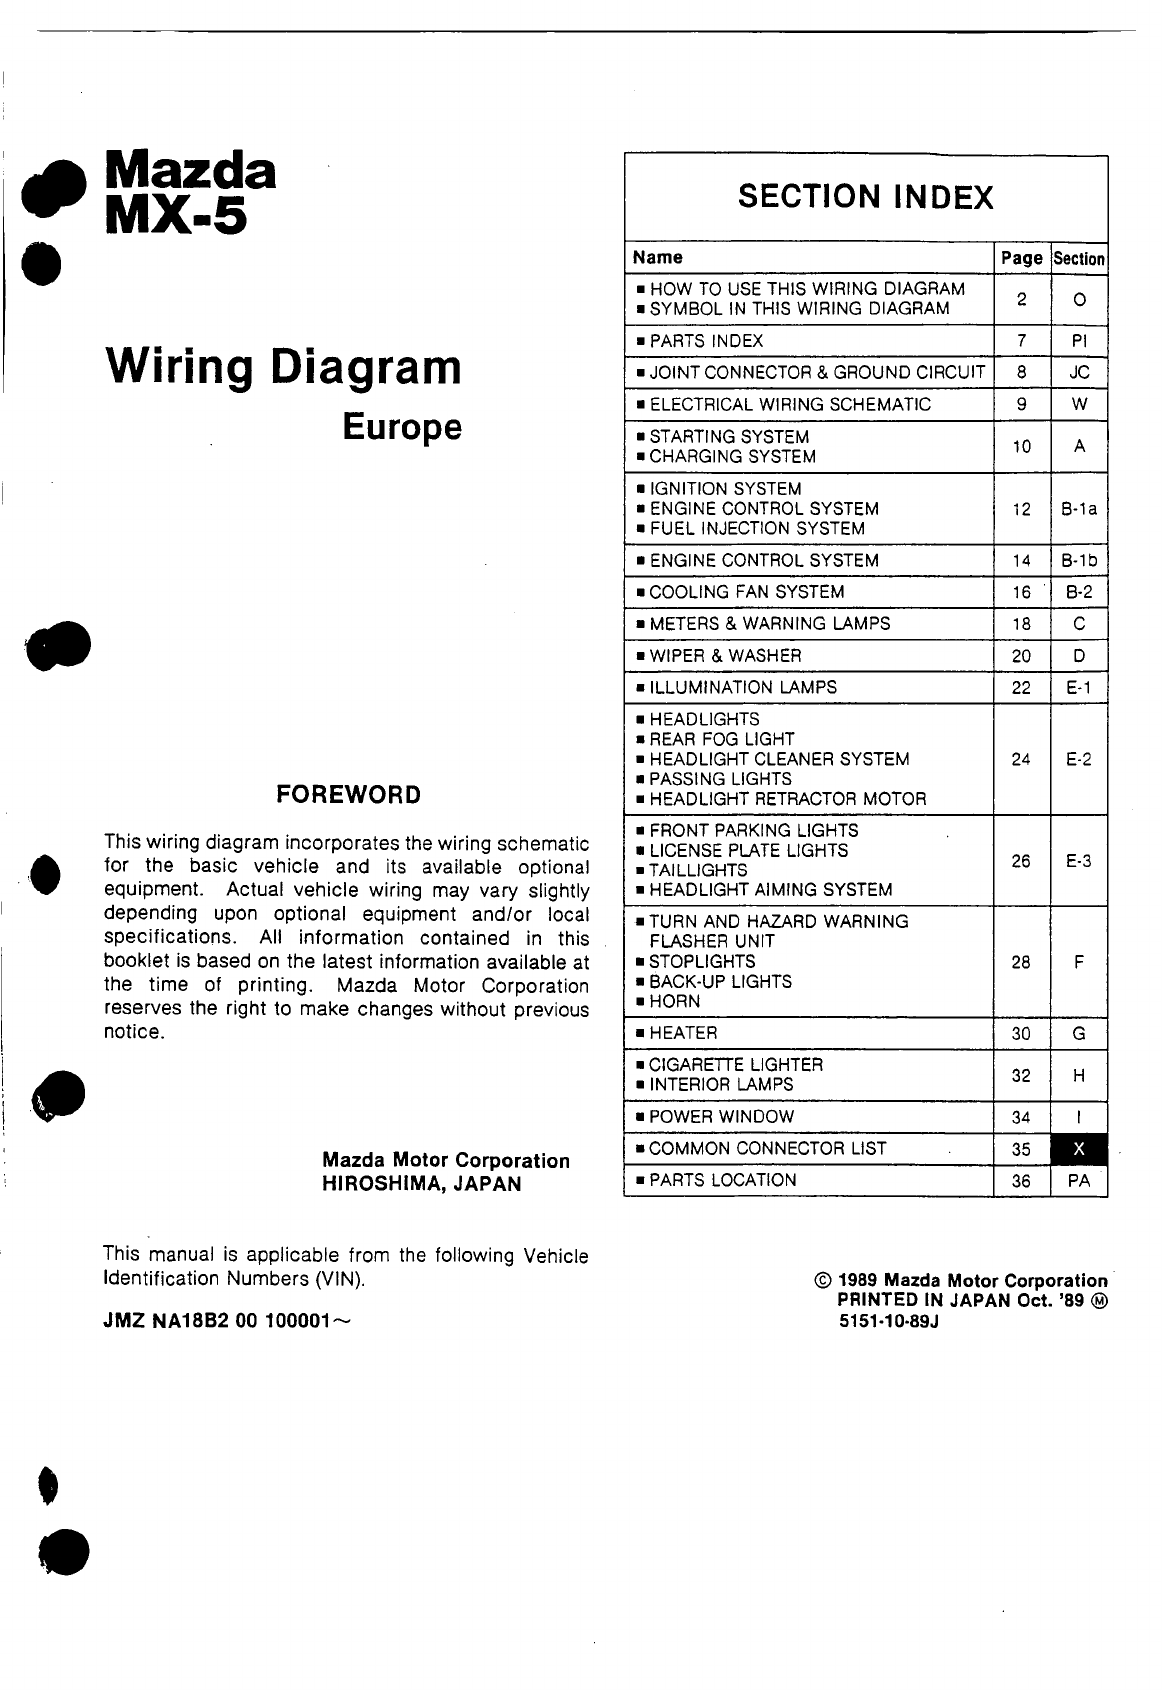 mazda mx 5 1989 misc documents wiring diagram pdf